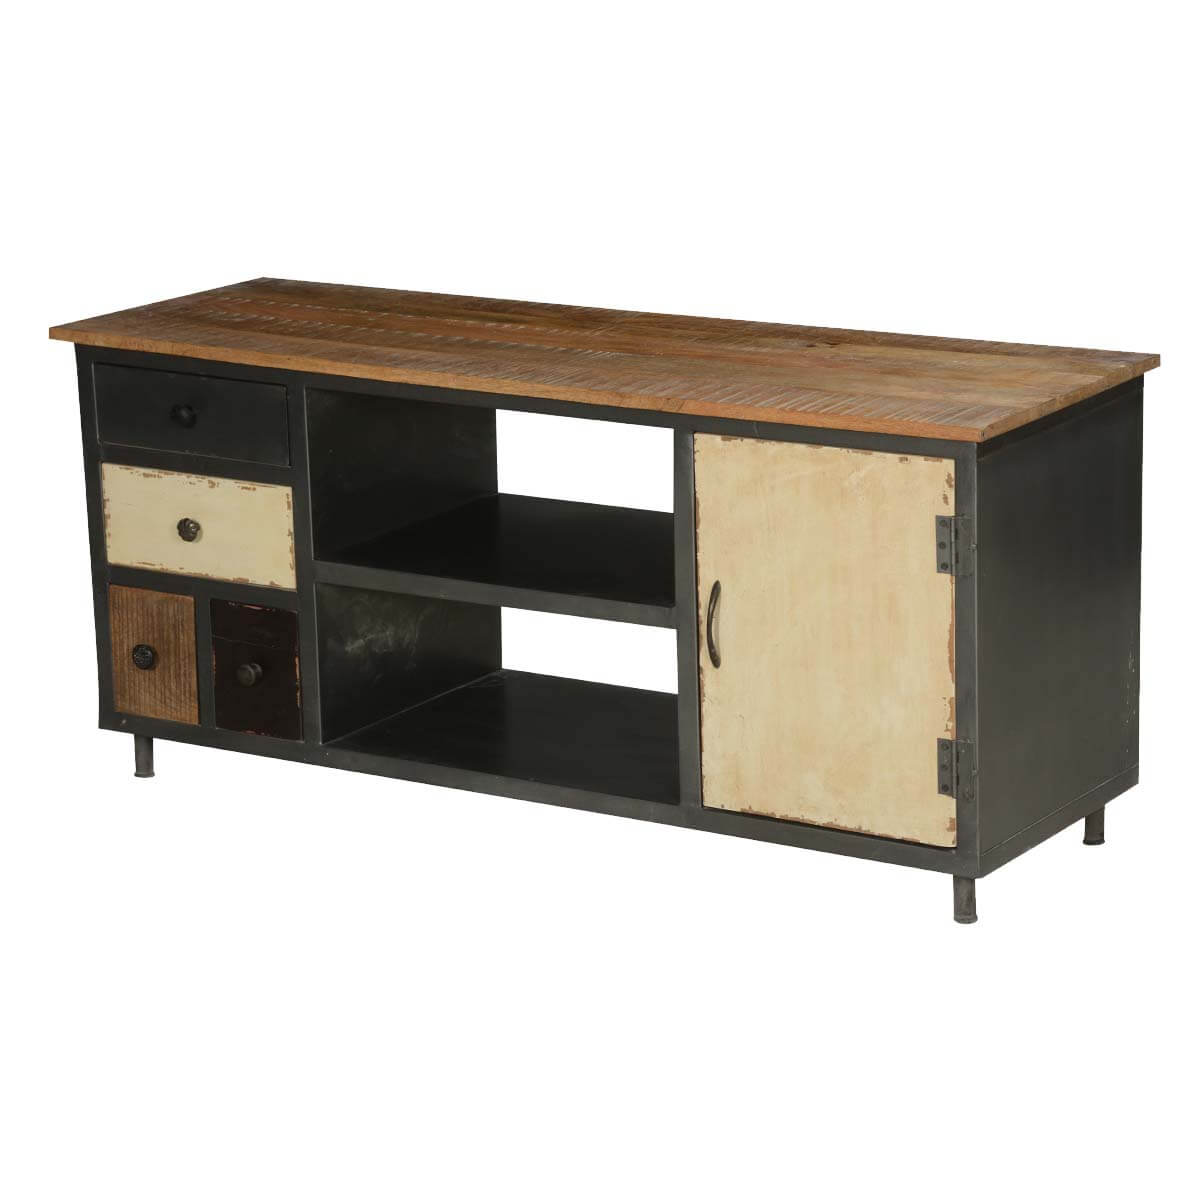 Modern rustic solid wood iron media console tv stand Modern media console